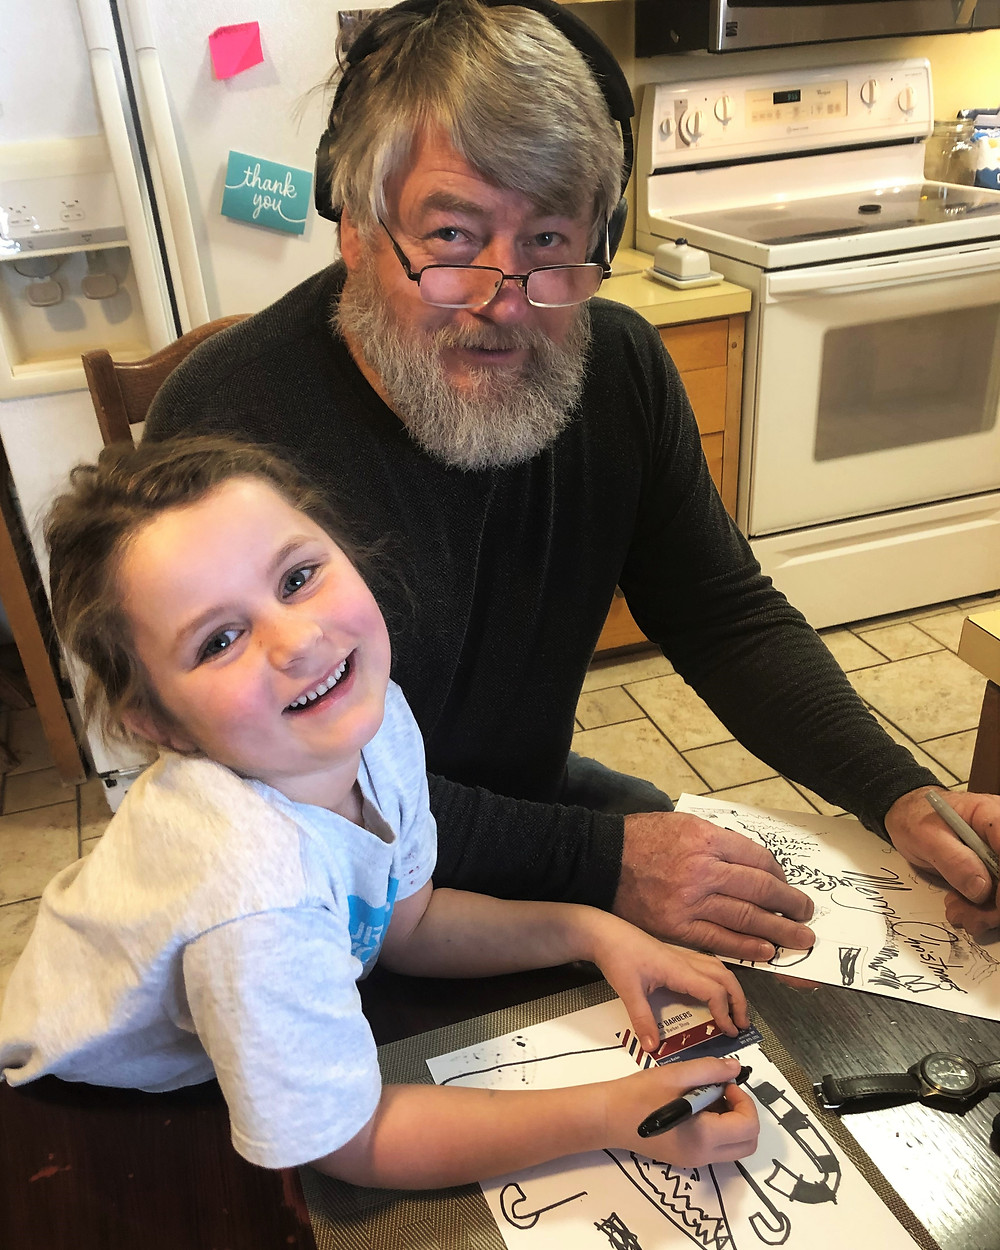 A little girl and her uncle smile at the camera while working on a drawing